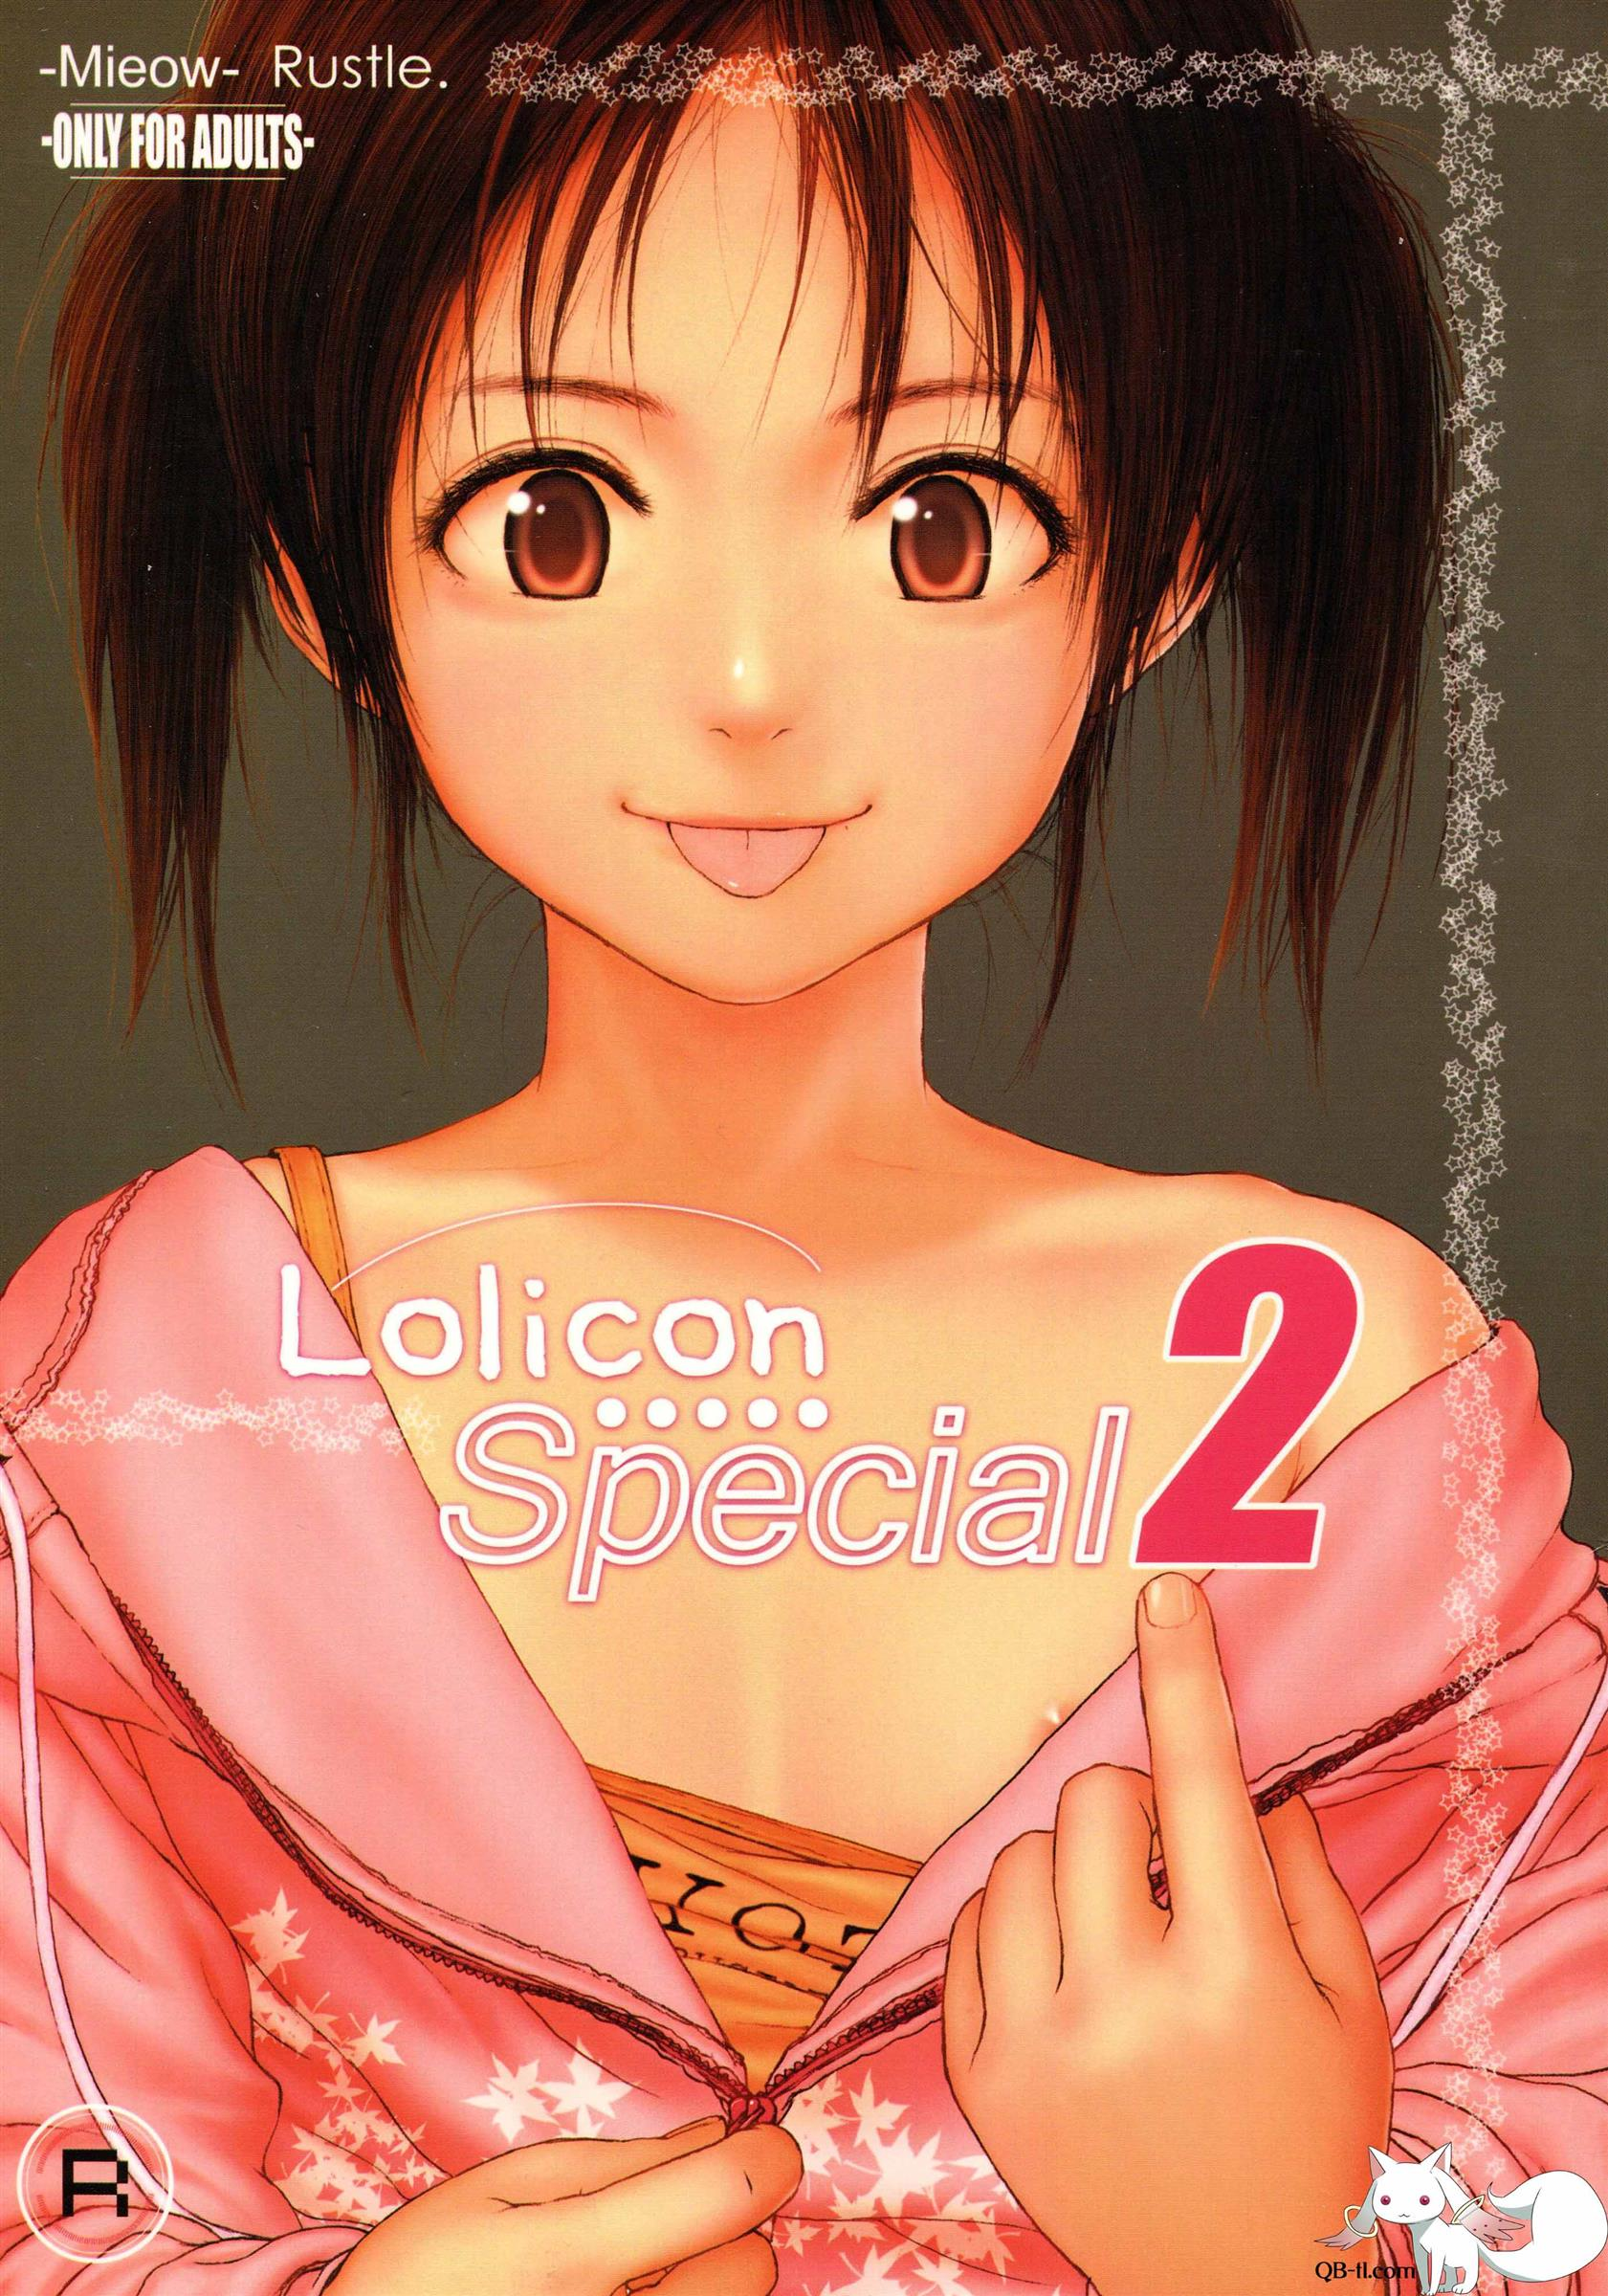 Lolicon Special 2